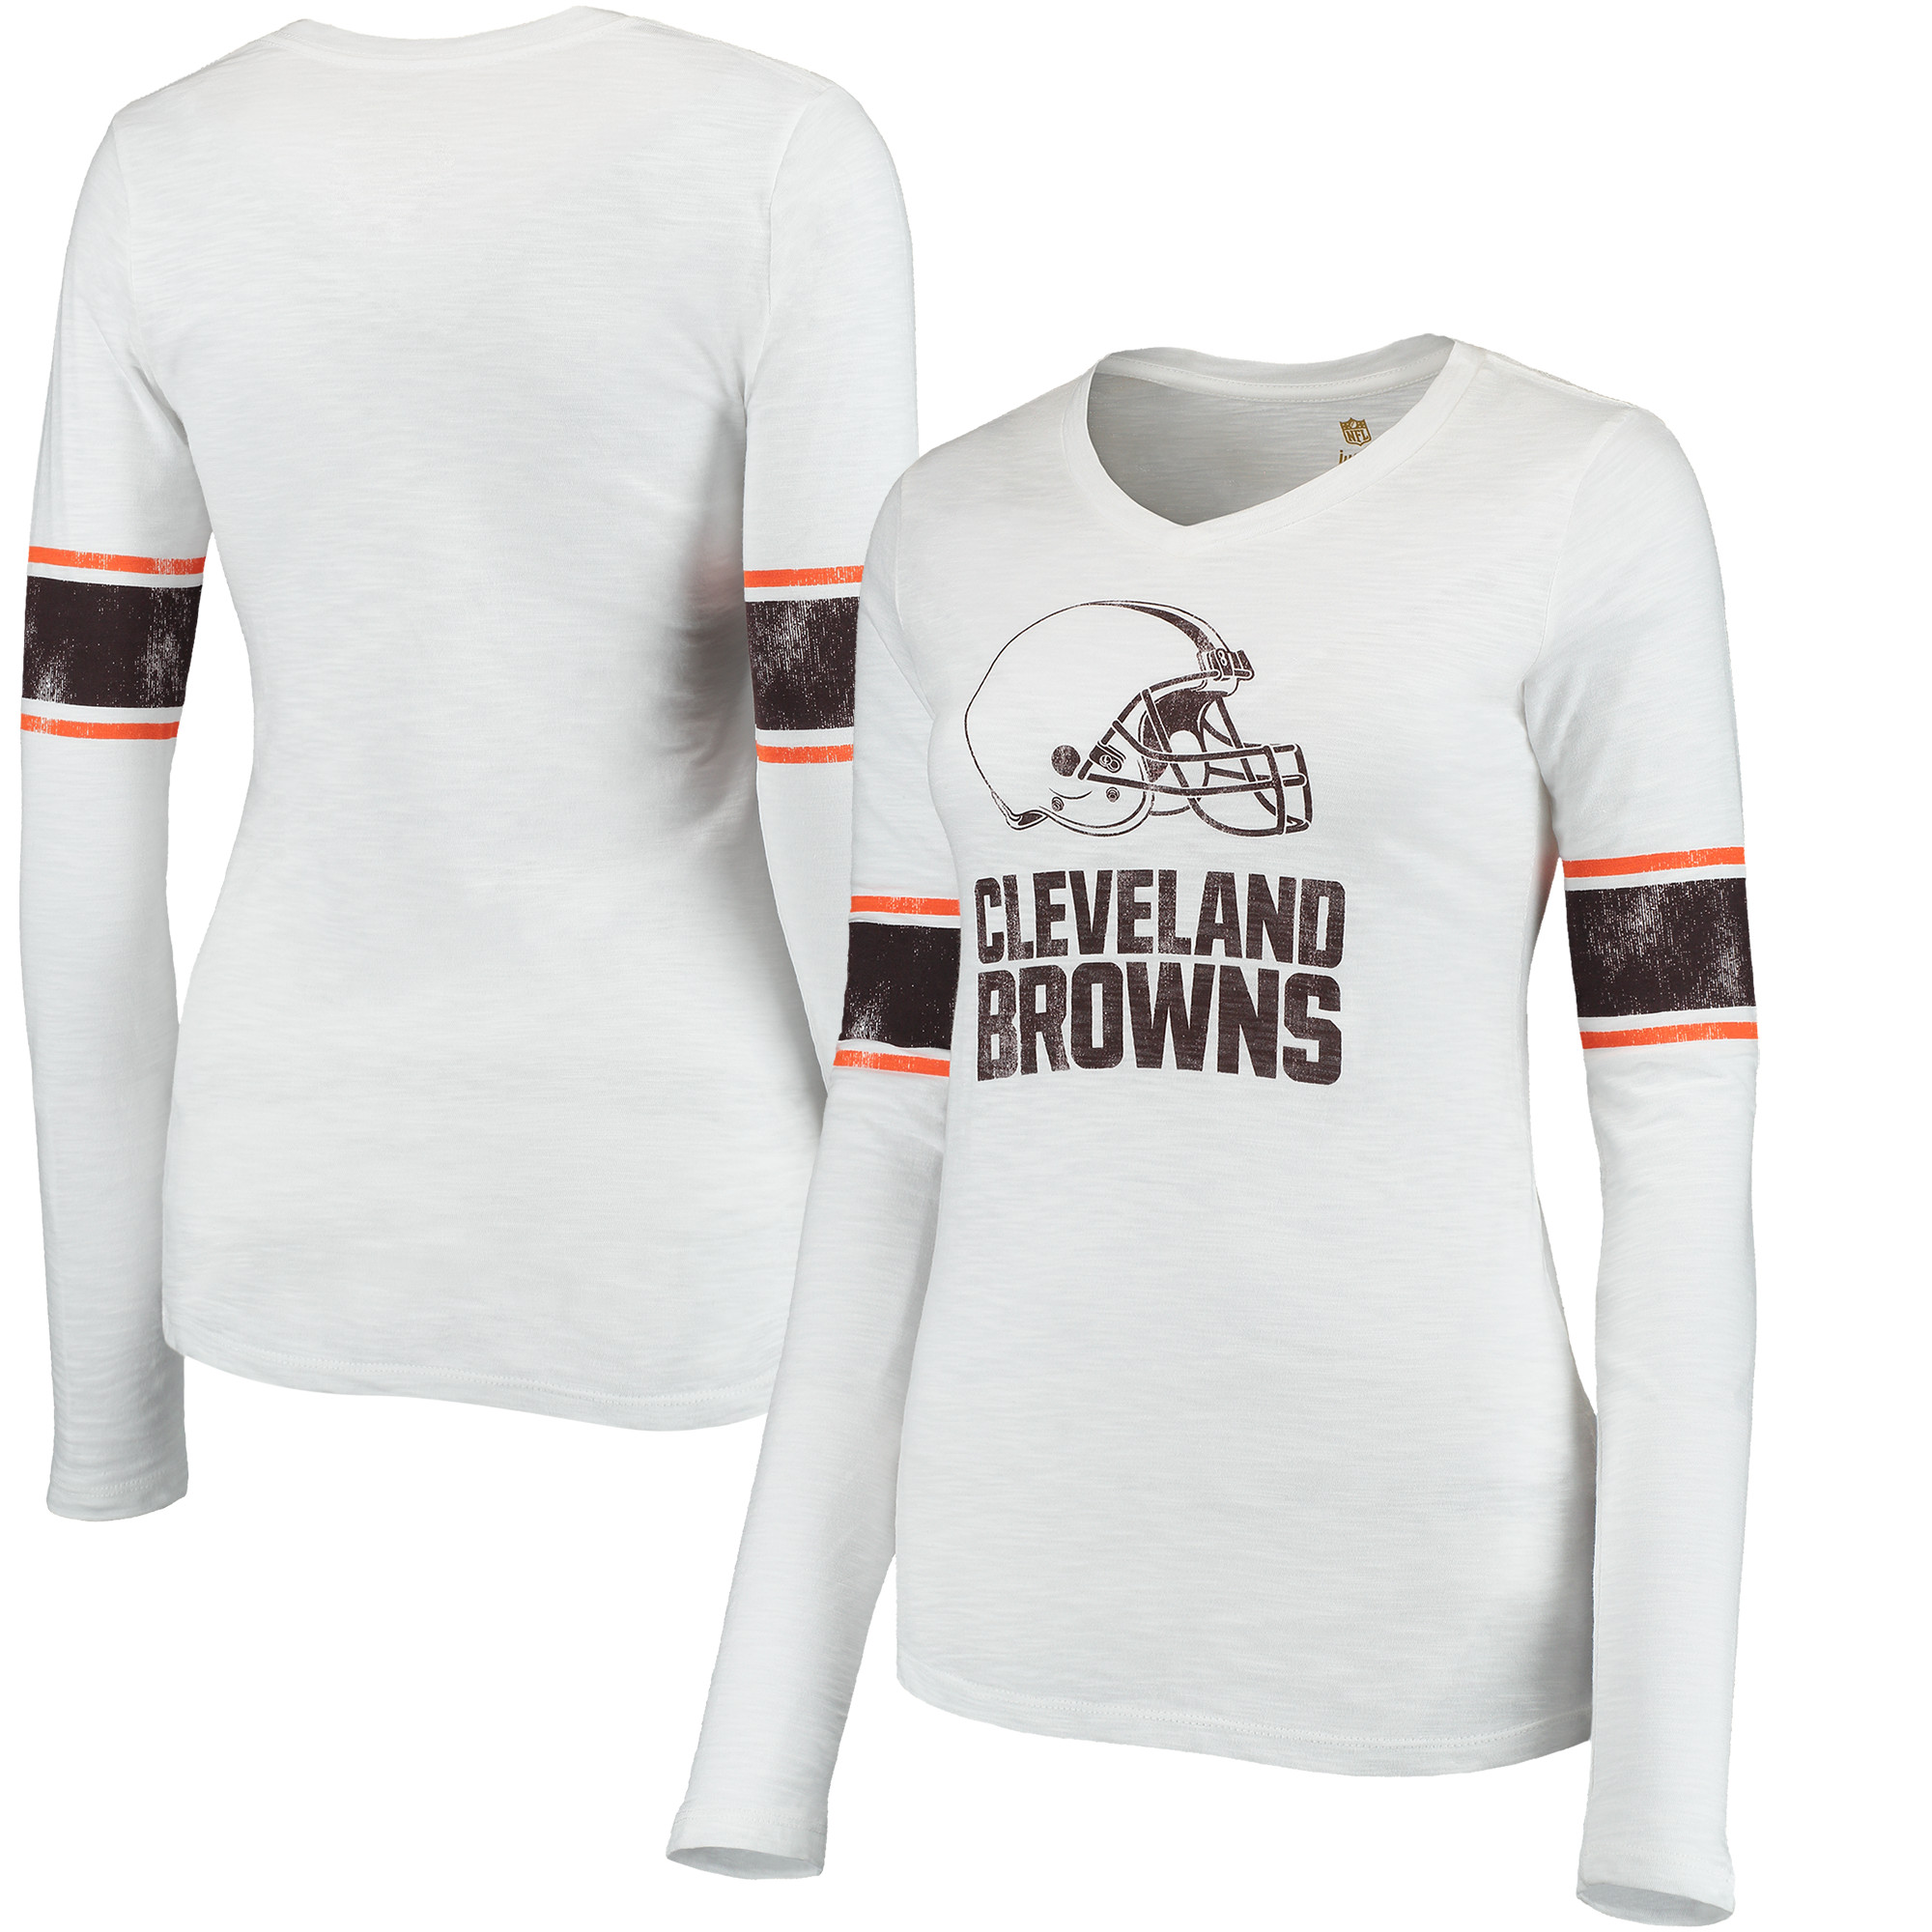 Cleveland Browns Juniors Team Leader V-Neck Long Sleeve T-Shirt - White